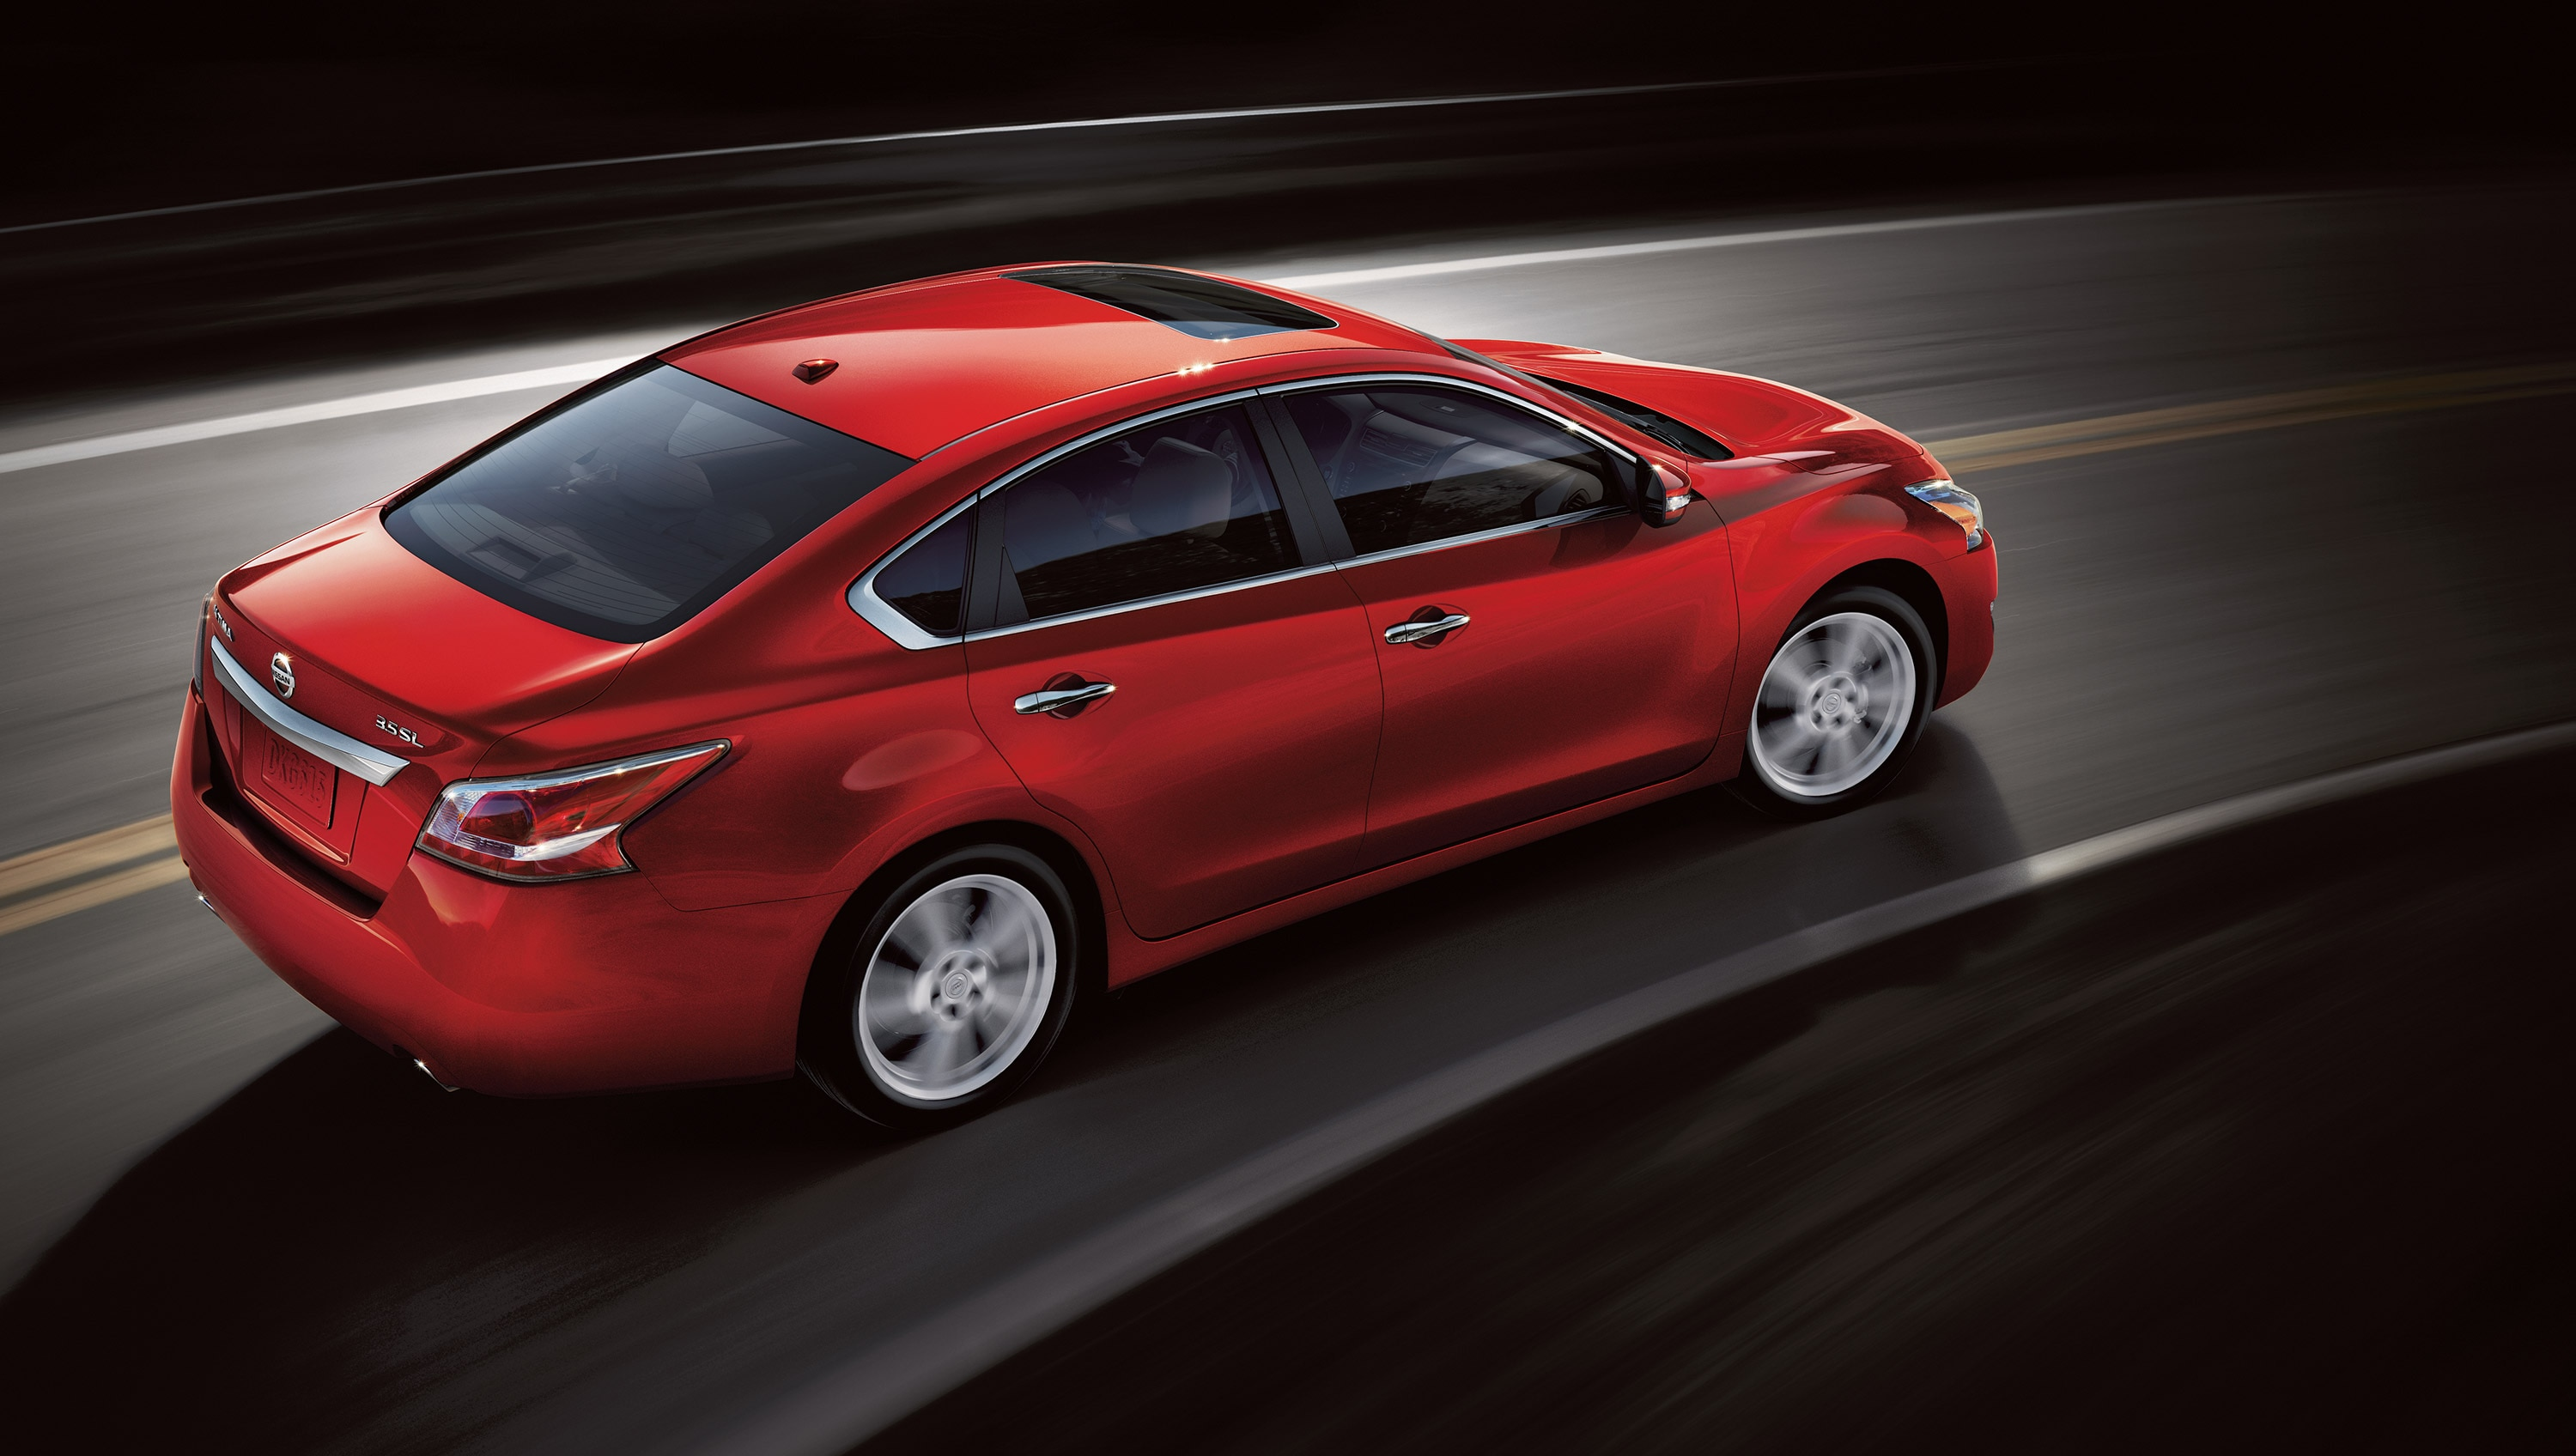 2015 Nissan Altima in Red in Motion